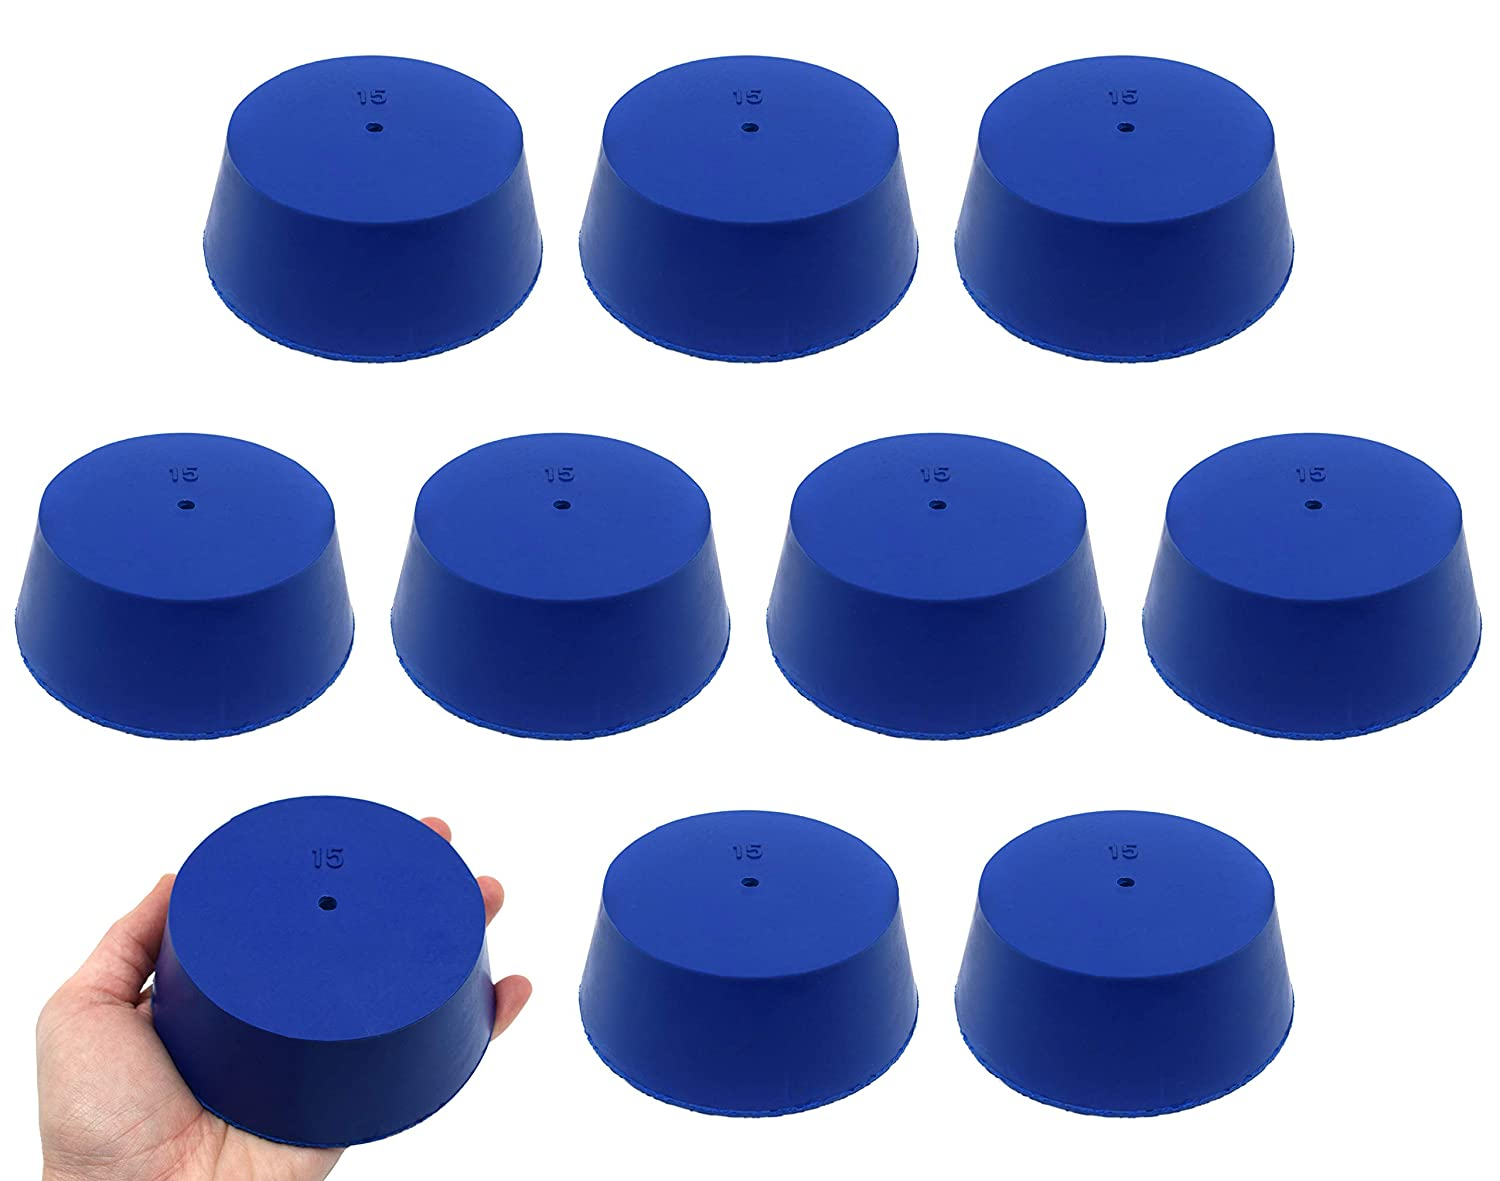 Neoprene Stopper, ASTM - Pack of 10-1 Hole - Blue, Size #15: 83mm Bottom, 103mm Top, 39mm Length - Eisco Labs